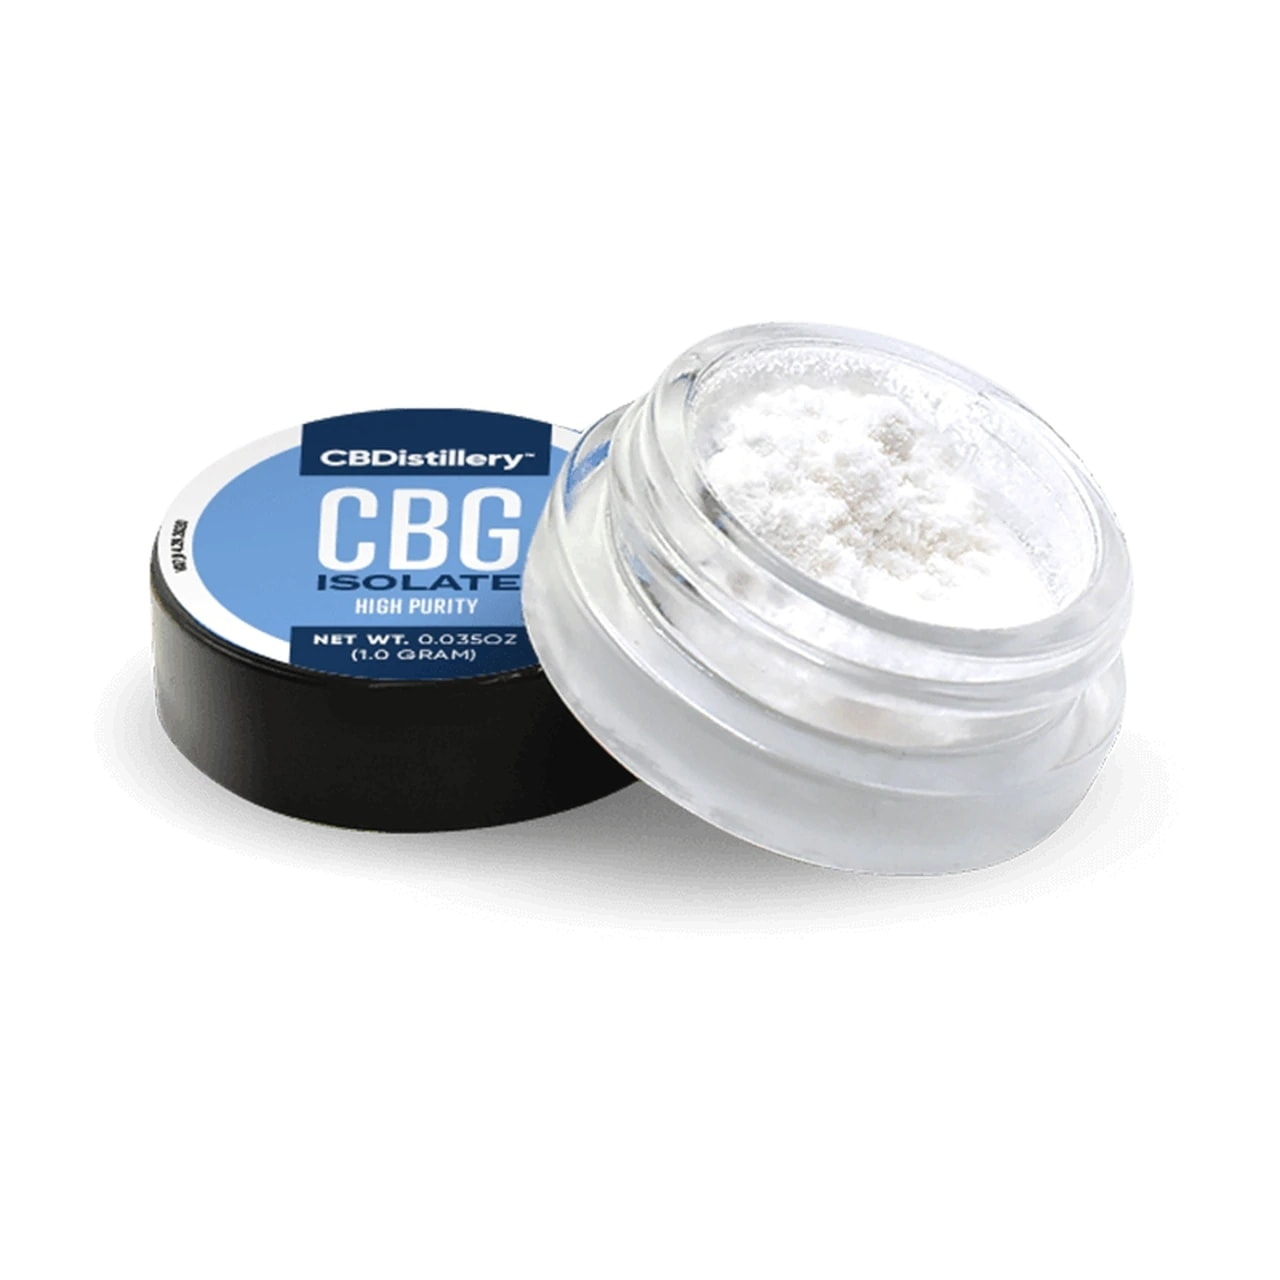 CBDistillery, CBG Isolate High Purity Powder, 1g, 970mg of CBG